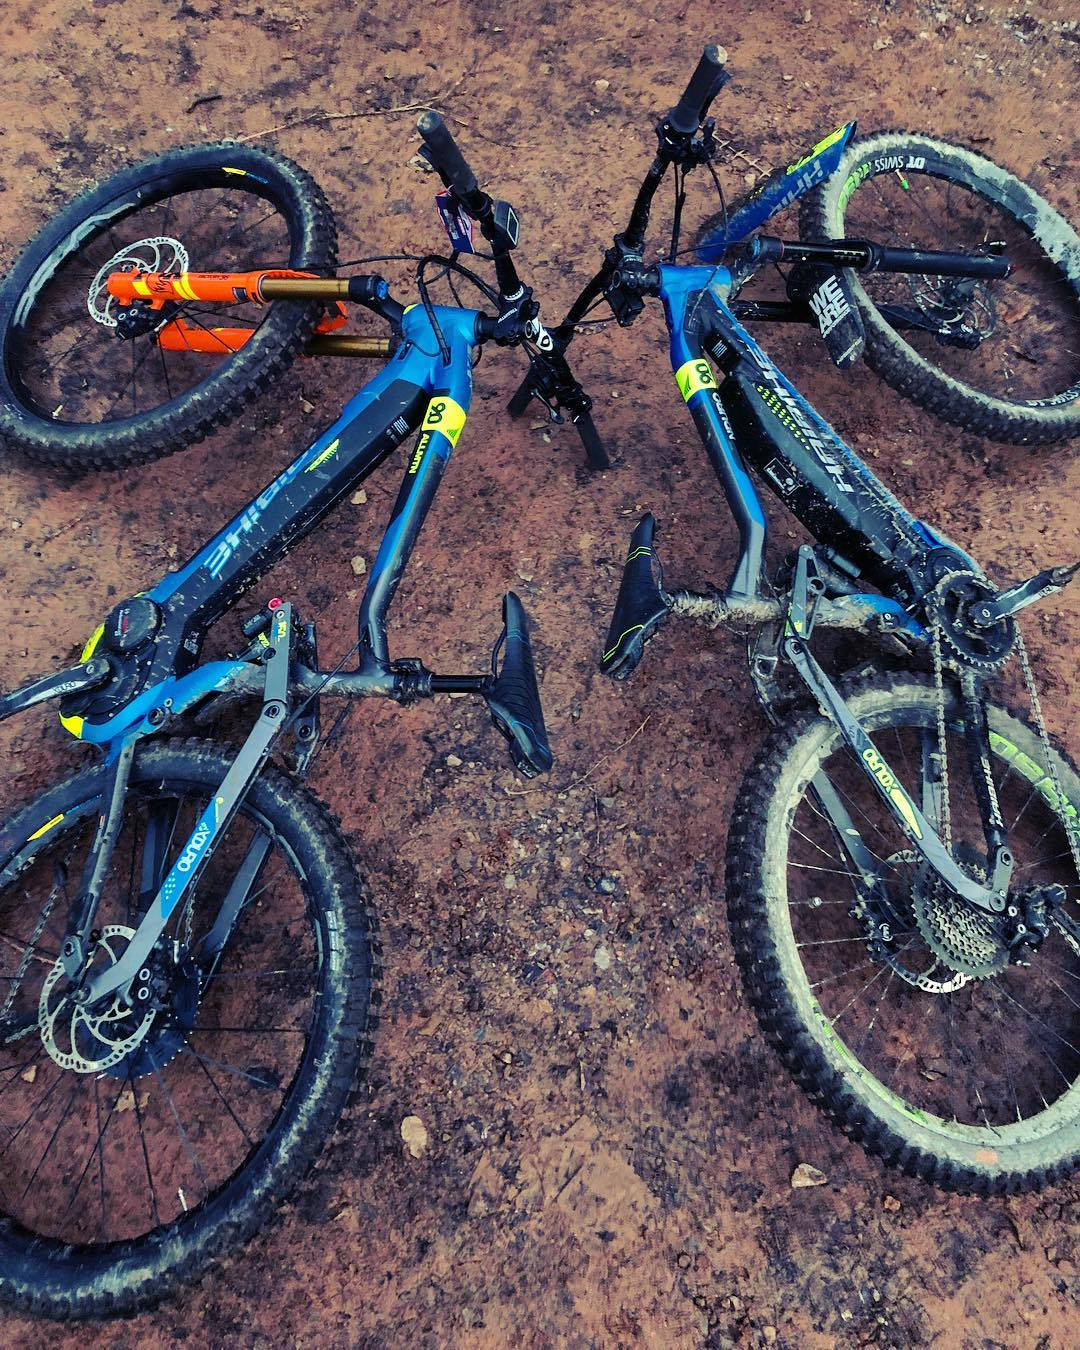 WE ARE FAMILY :) #haibike #weareeperformance #emtb #enduro #design #ebike